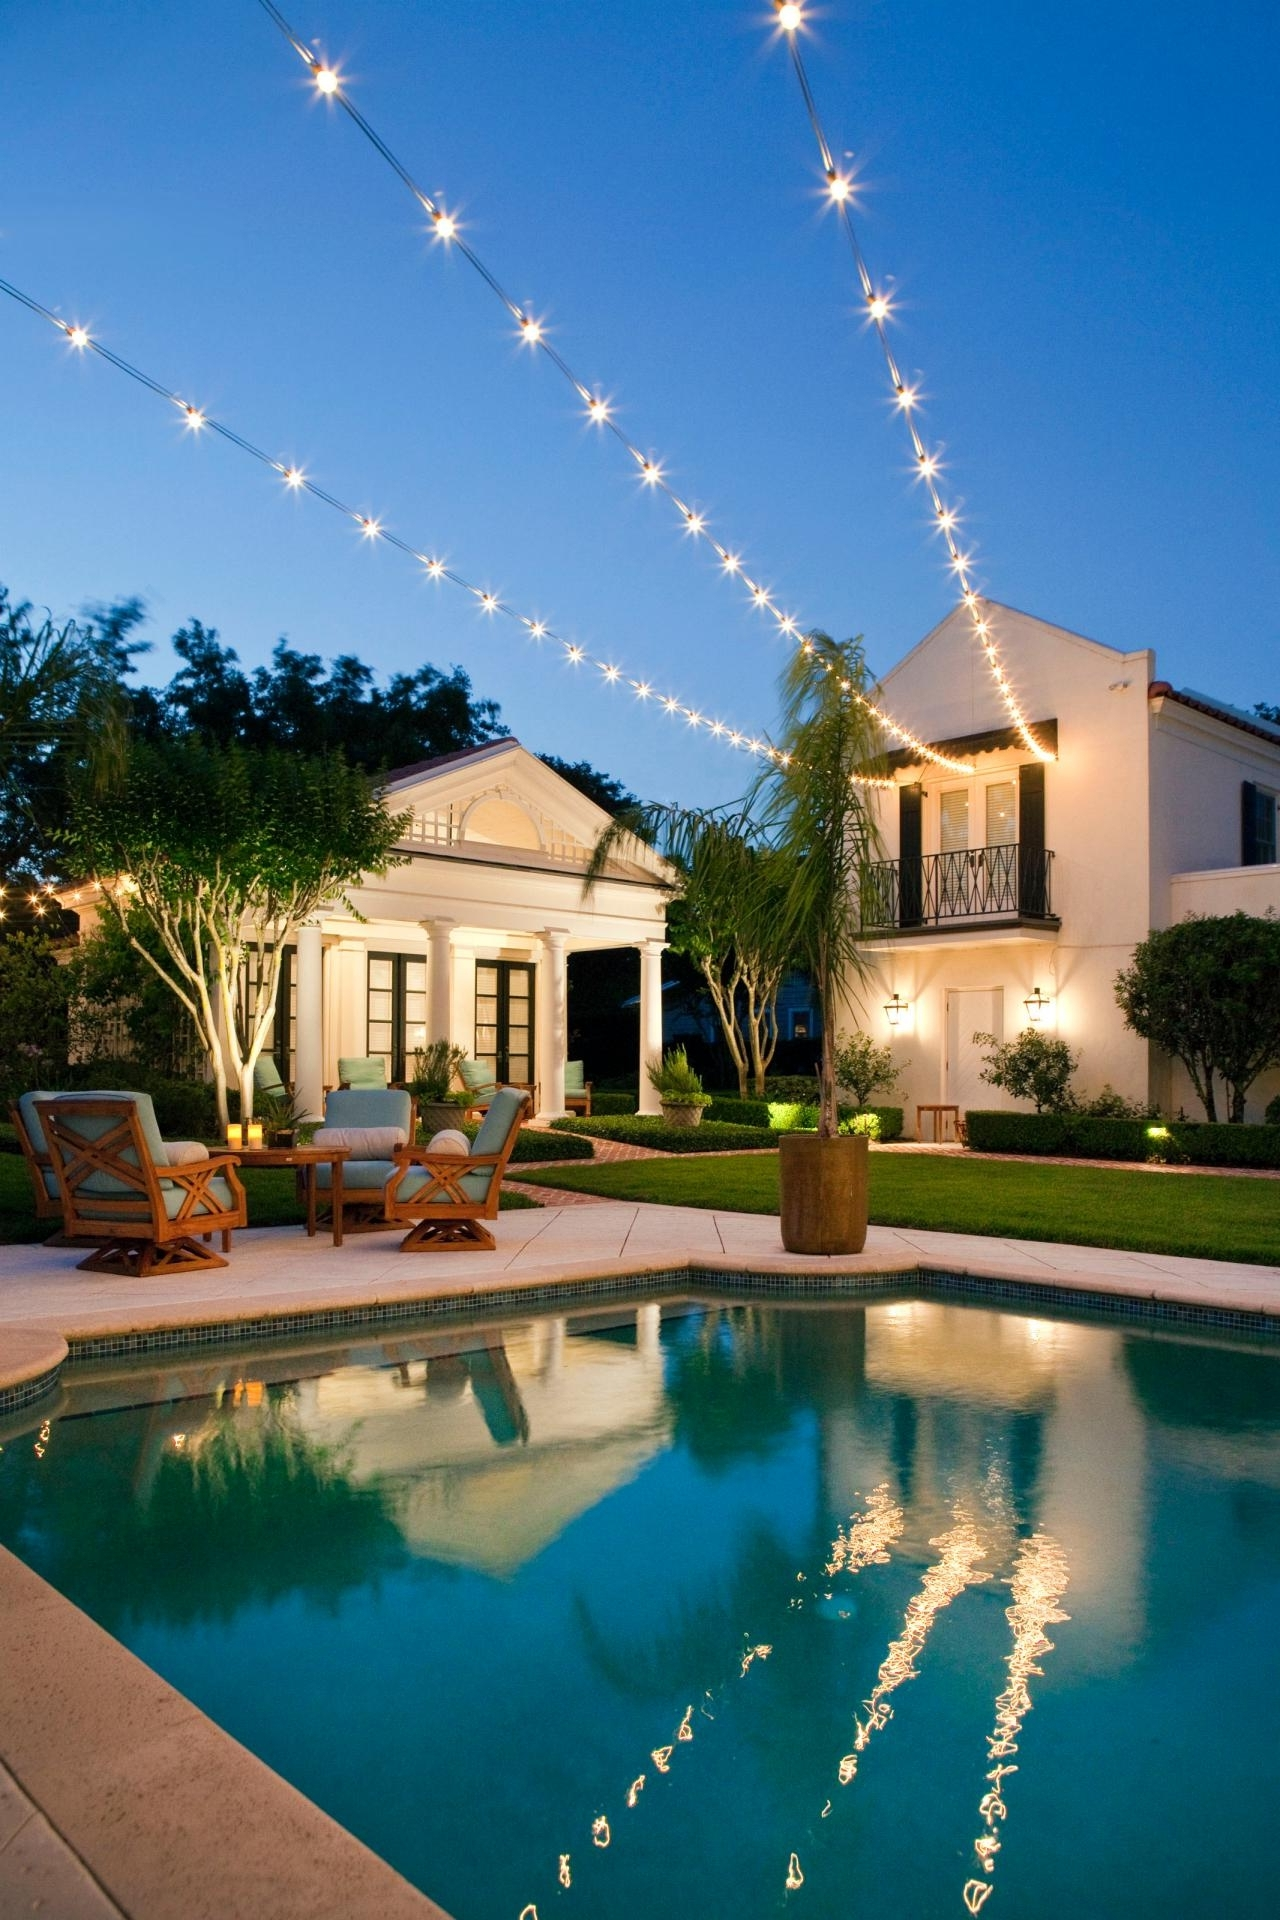 Hgtv's Inside Hanging Outdoor Lights On House (View 18 of 20)